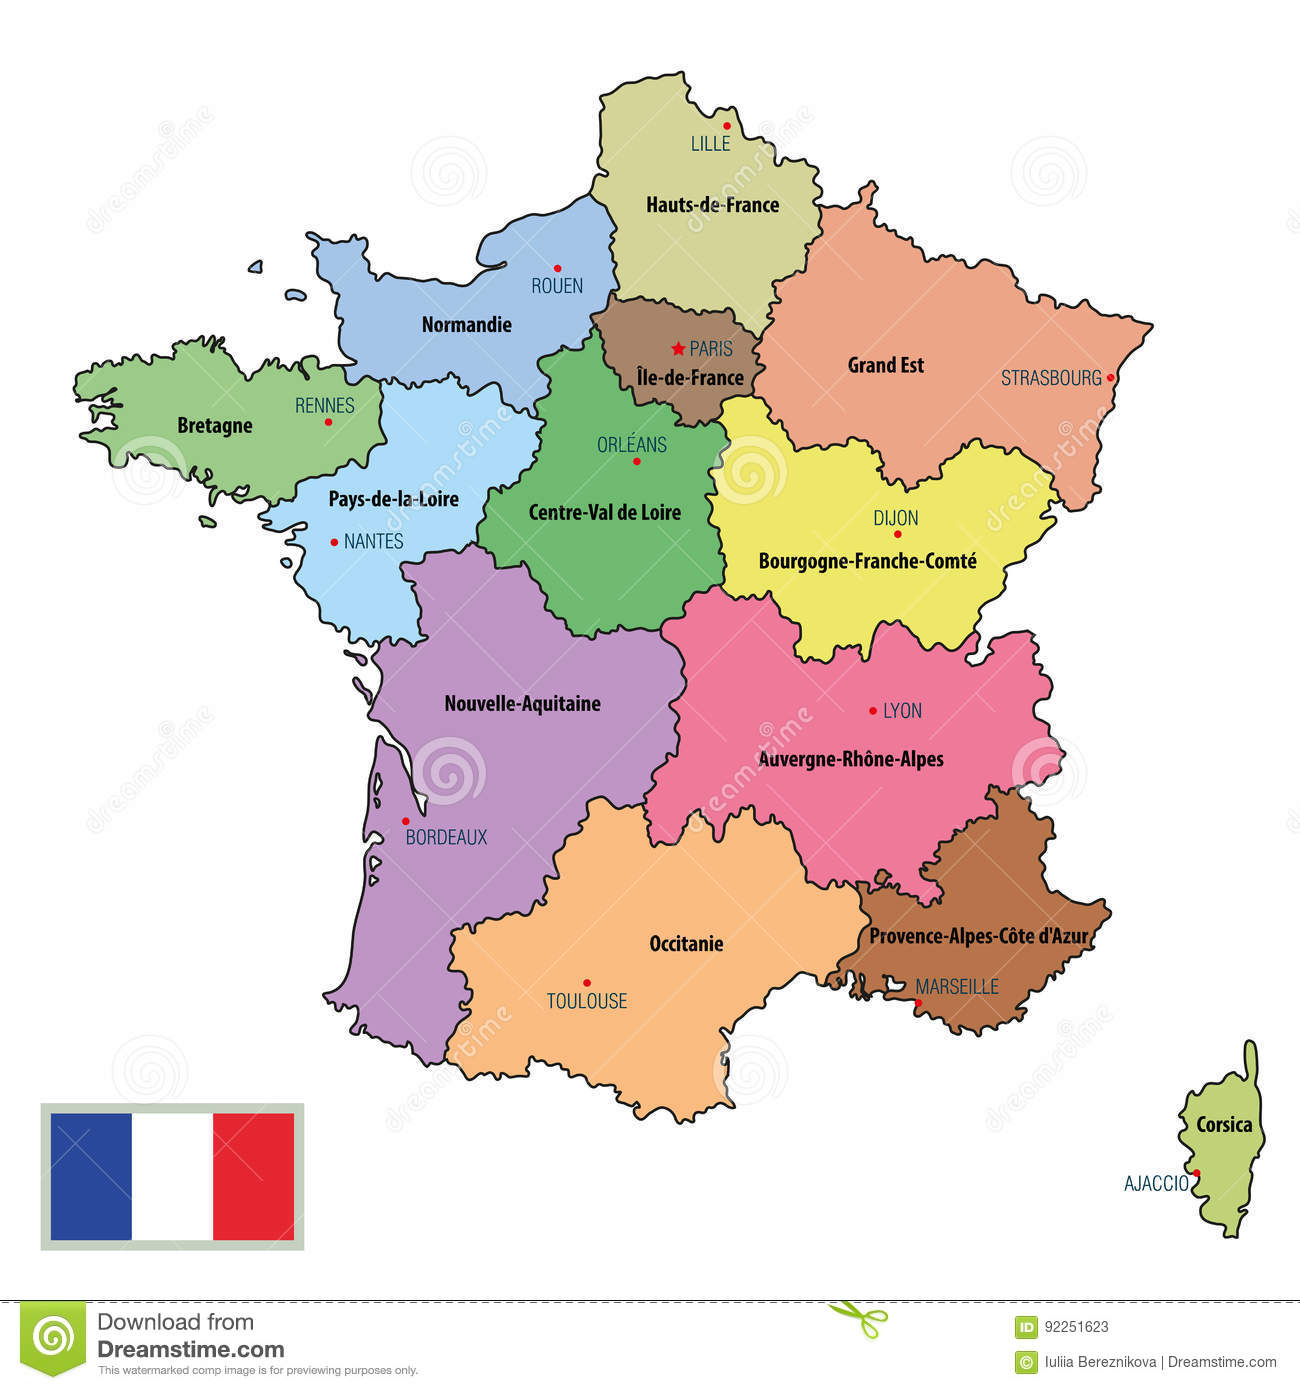 Map Of France Drawing.France Map With Regions And Their Capitals Stock Vector